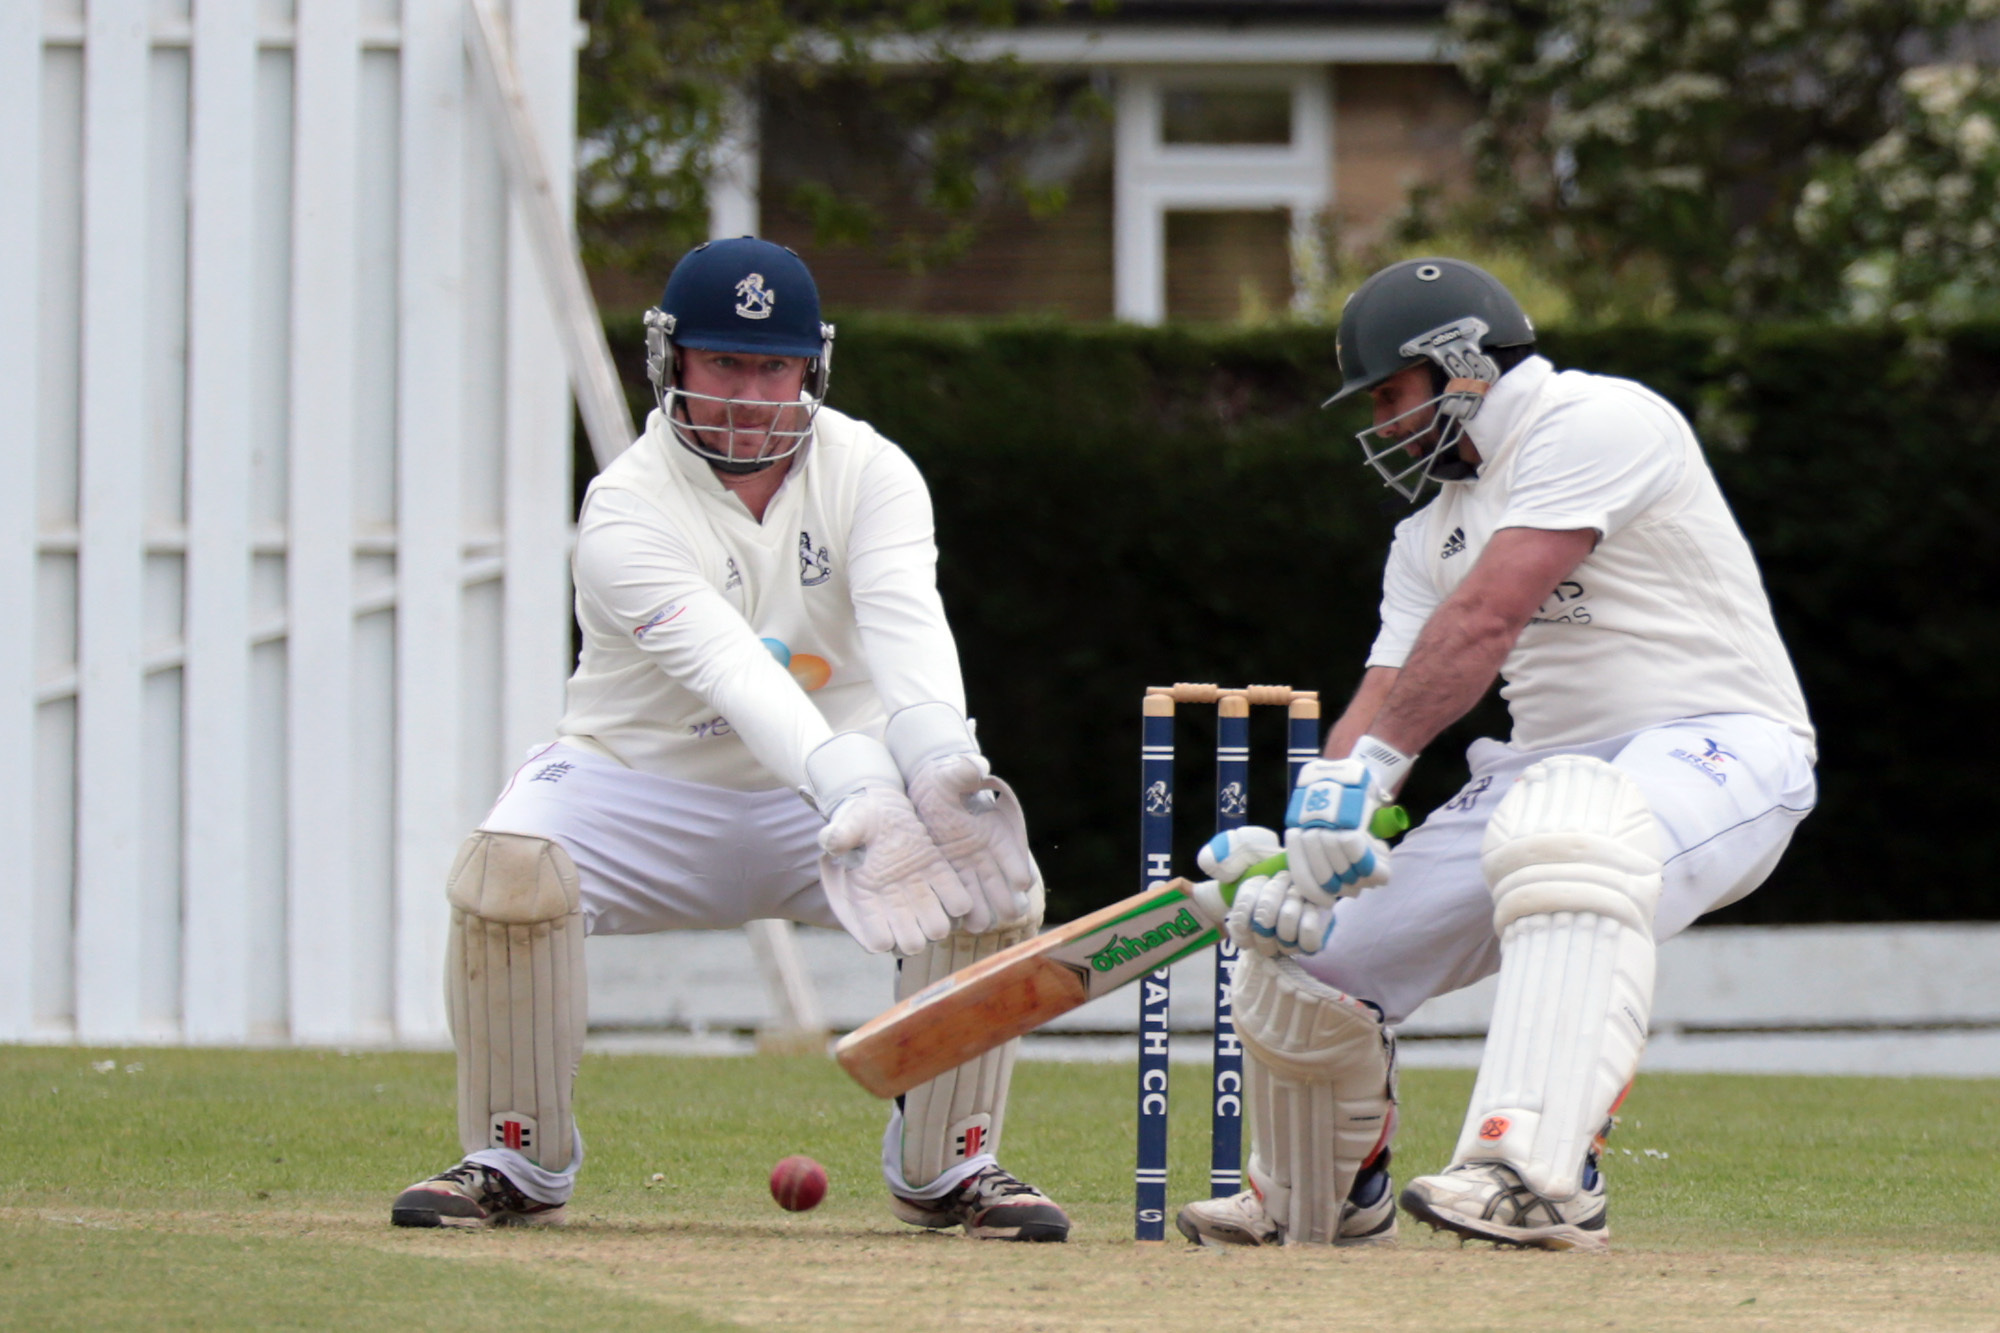 IN THE RUNS: Century-maker Muhammad Ayub adds to his total during Oxford's Division 1 clash with Horspath, which was stopped after heavy rain arrived in the afternoon Picture: Ric Mellis